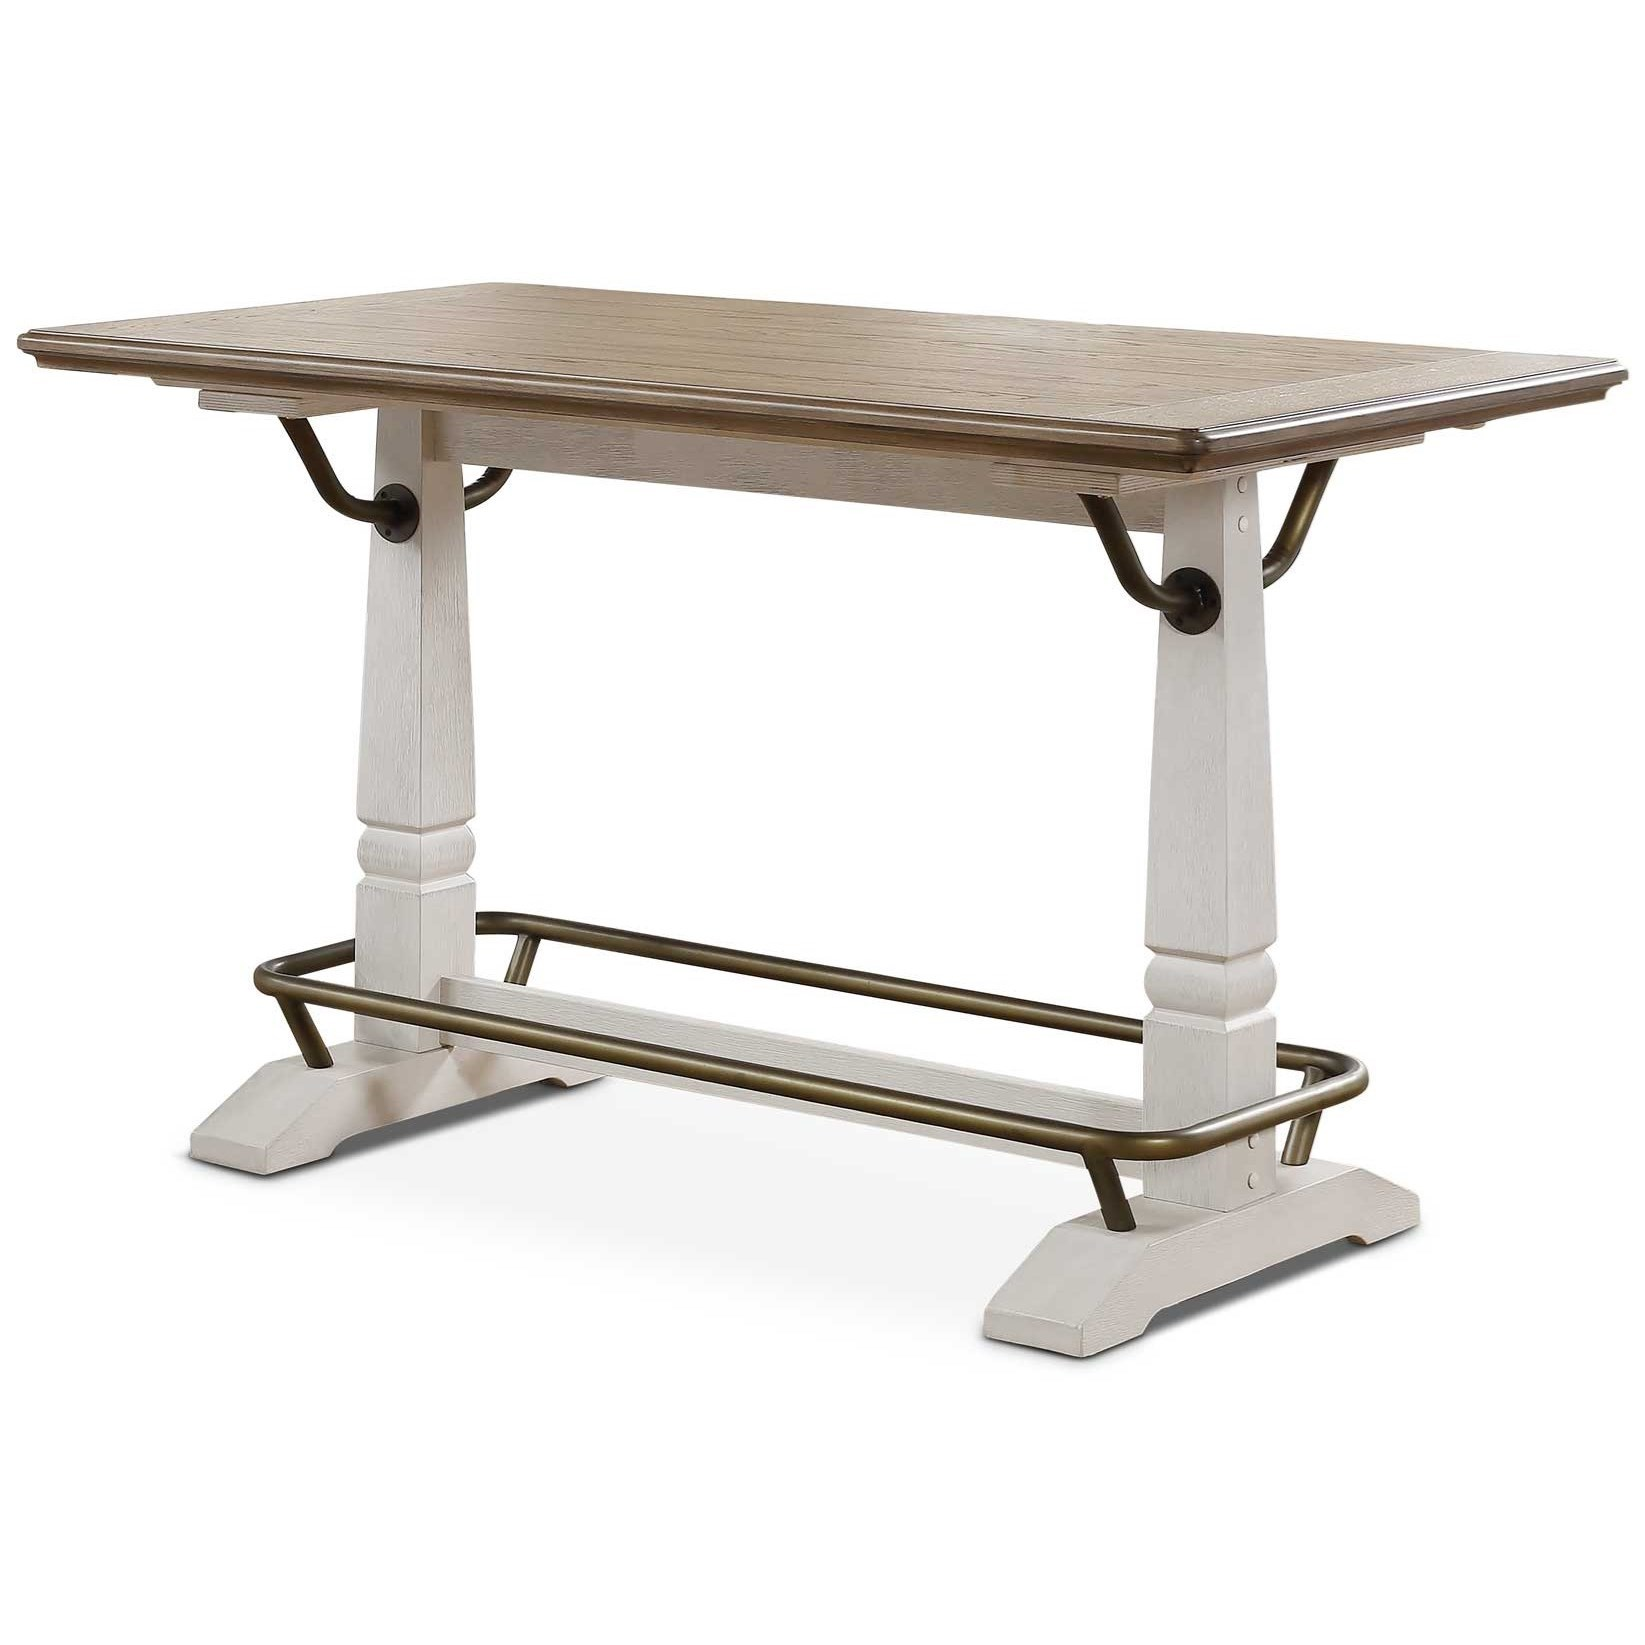 Pendleton Counter Height Table  by Steve Silver at Walker's Furniture